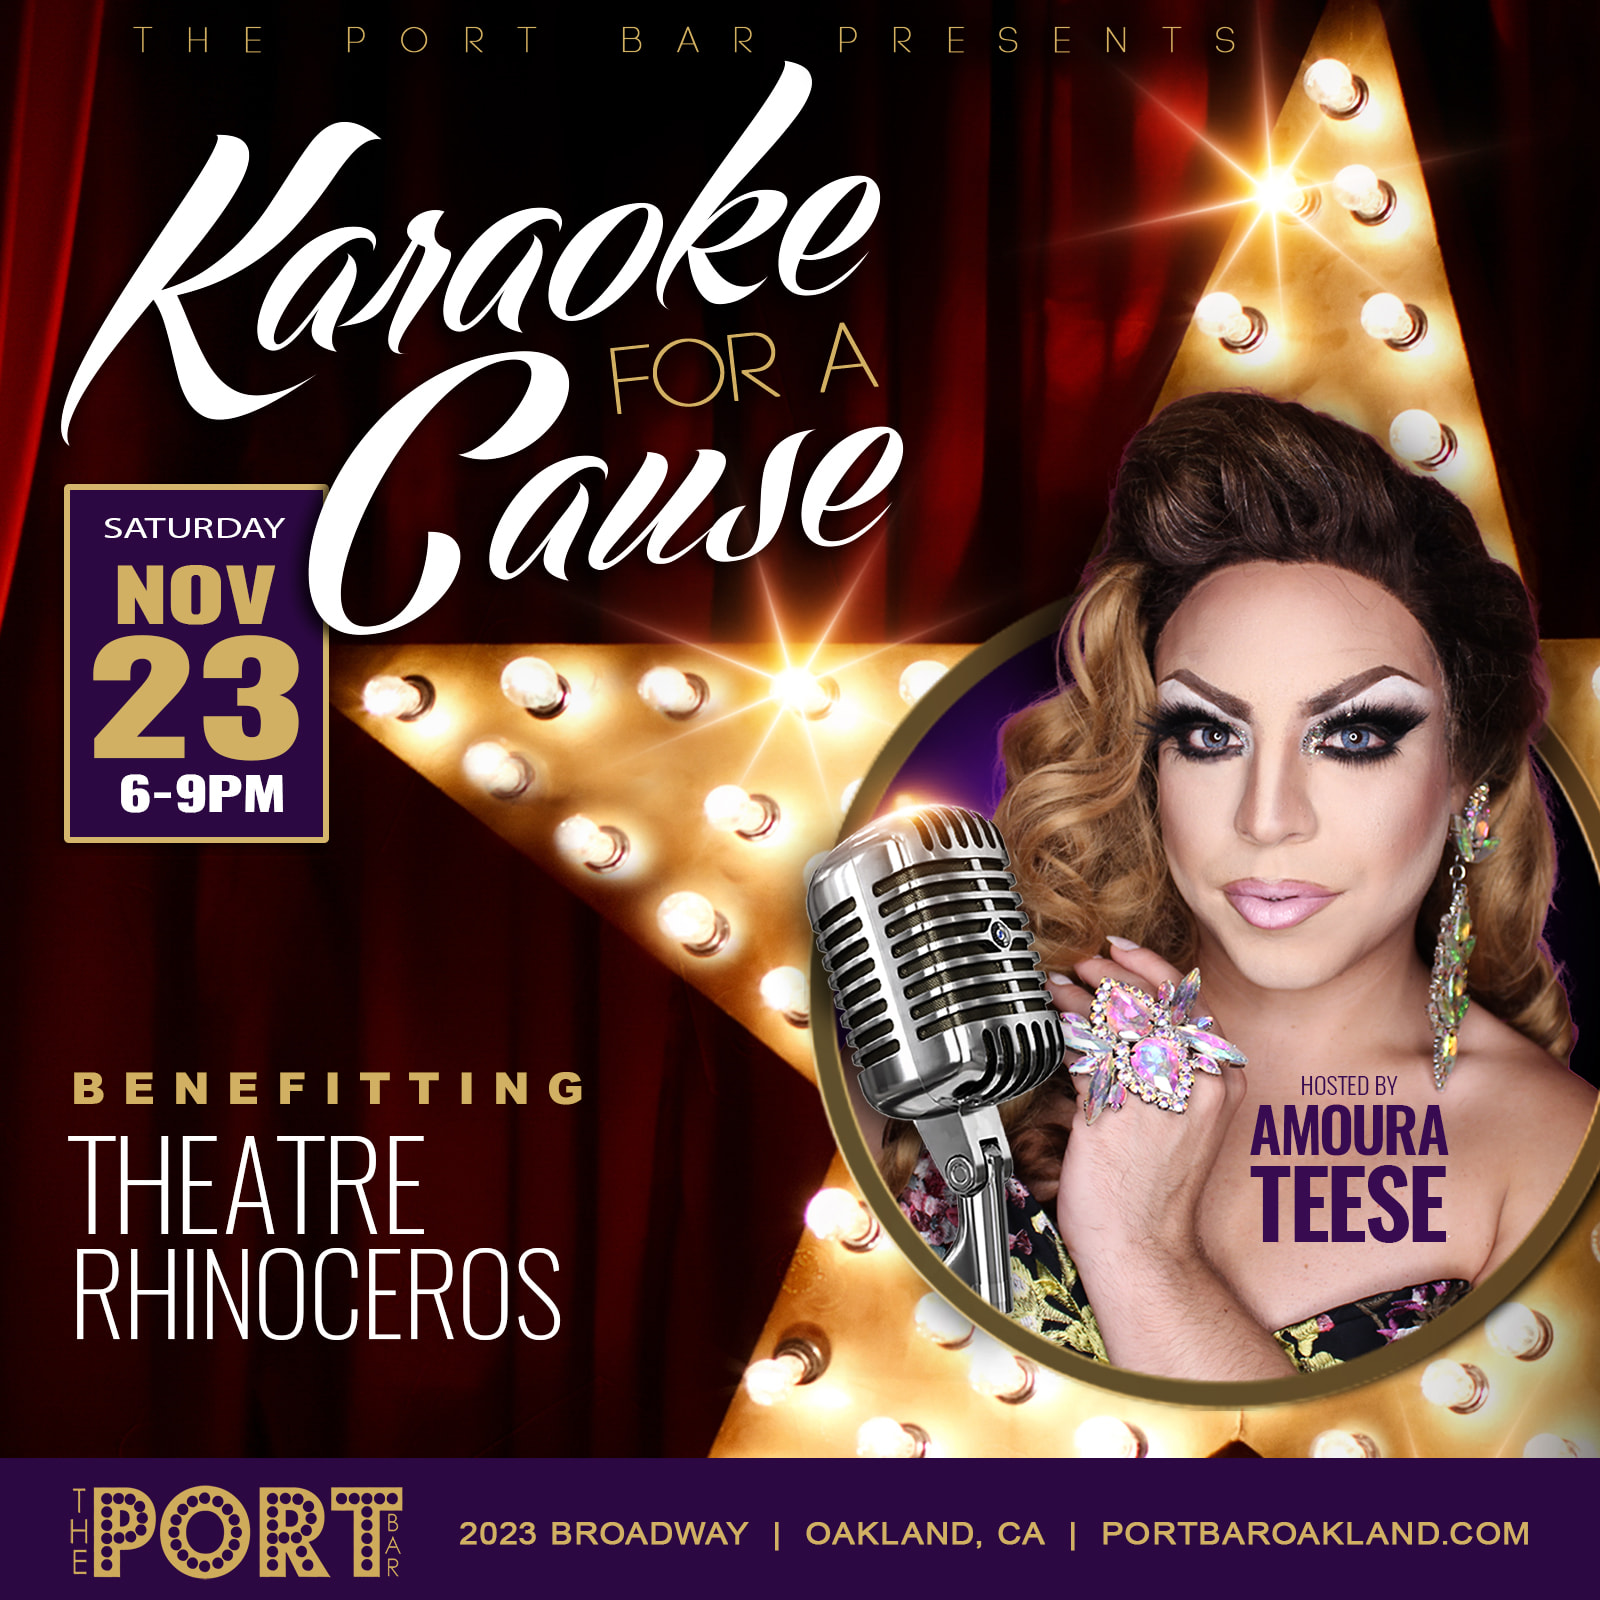 Karaoke for a Cause